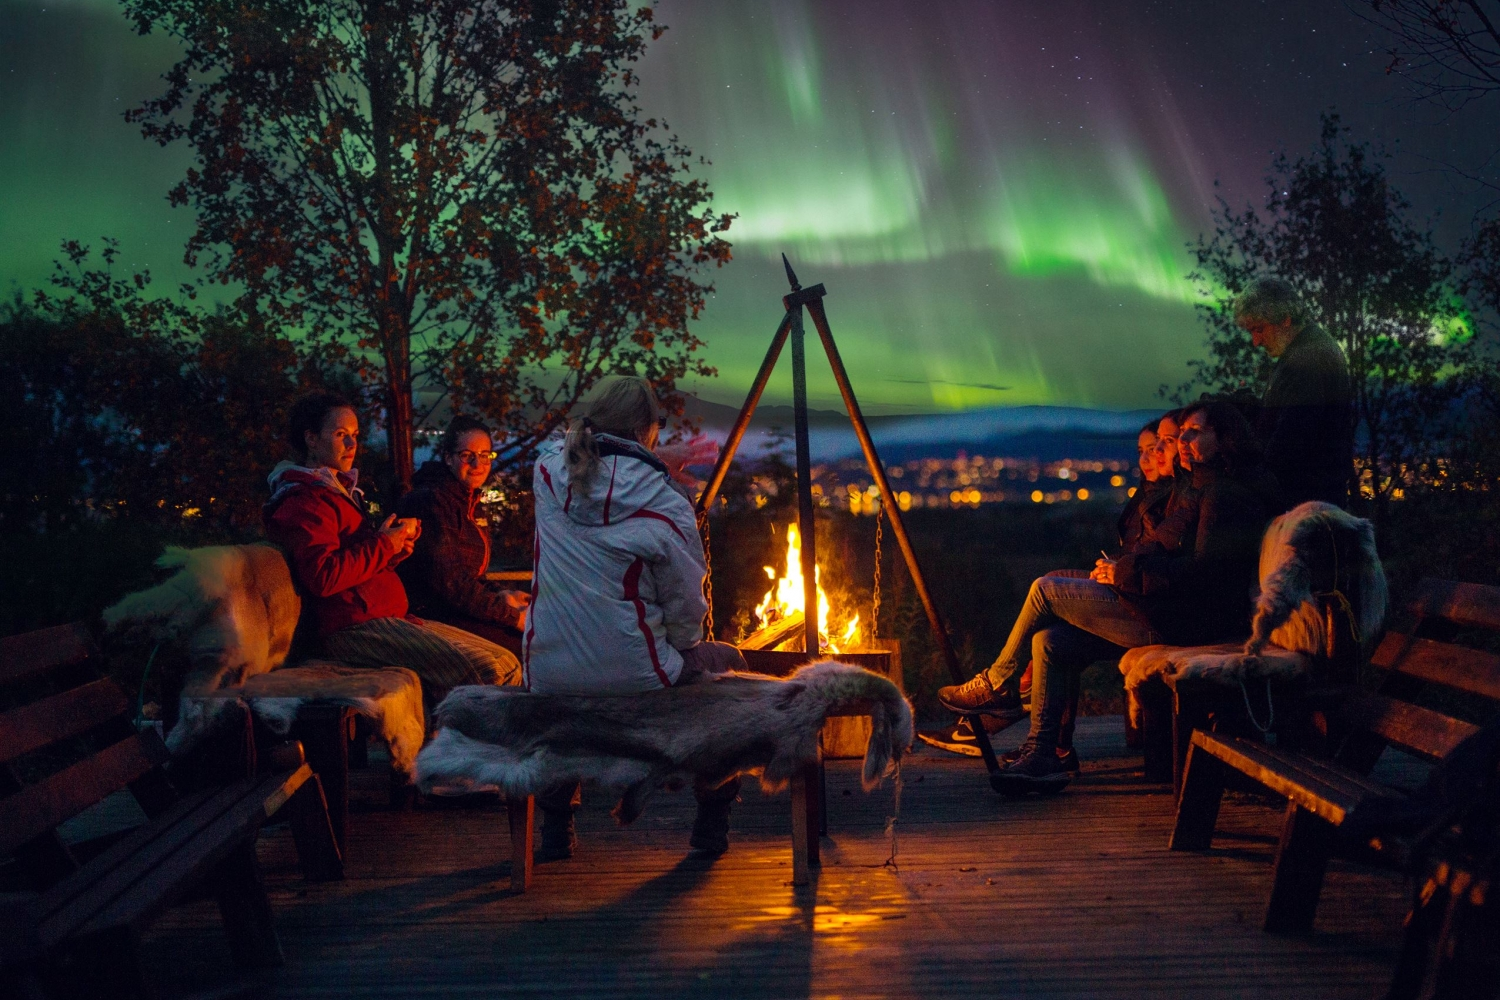 Guests gathered arount the bonfire, watching the Northern Lights